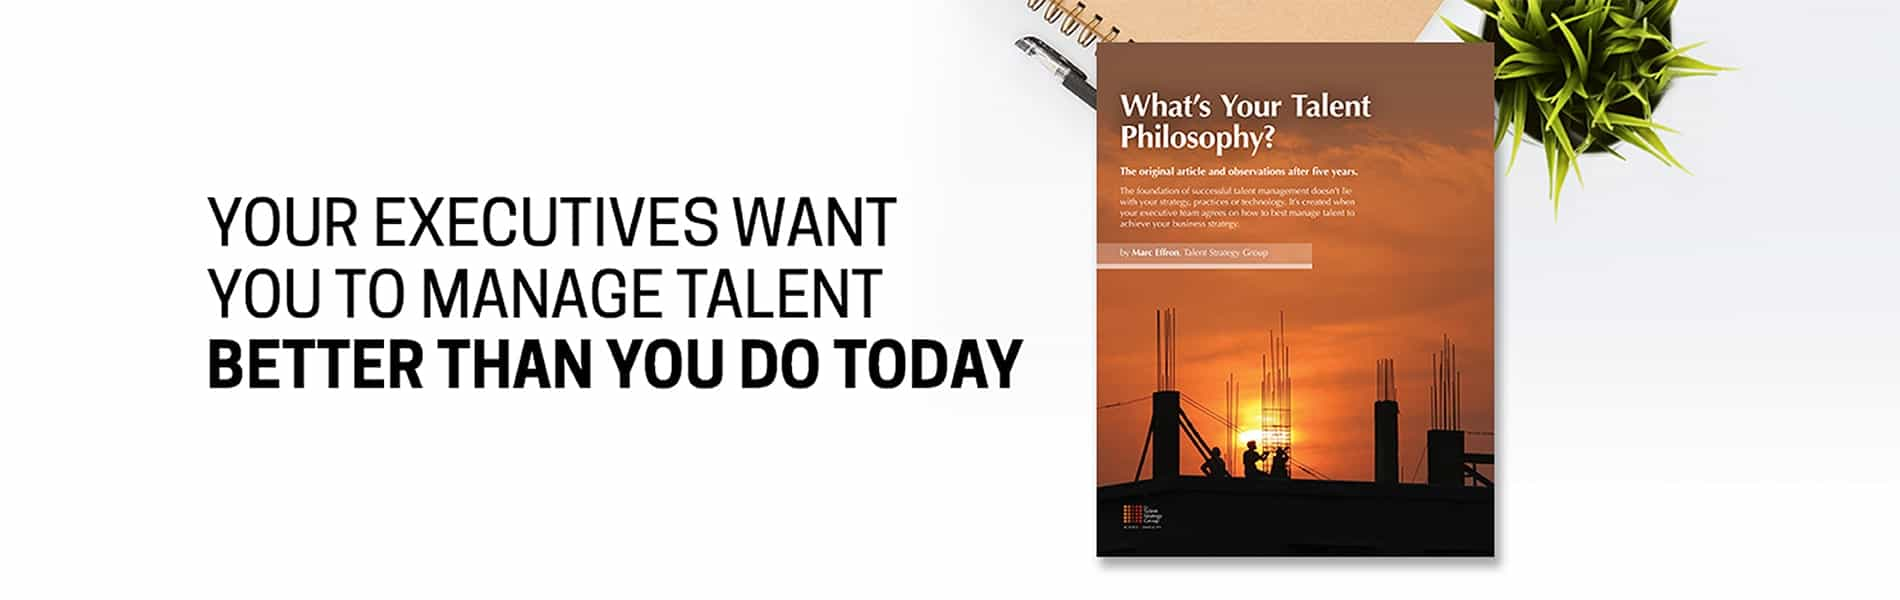 Talent Strategy Group image 2